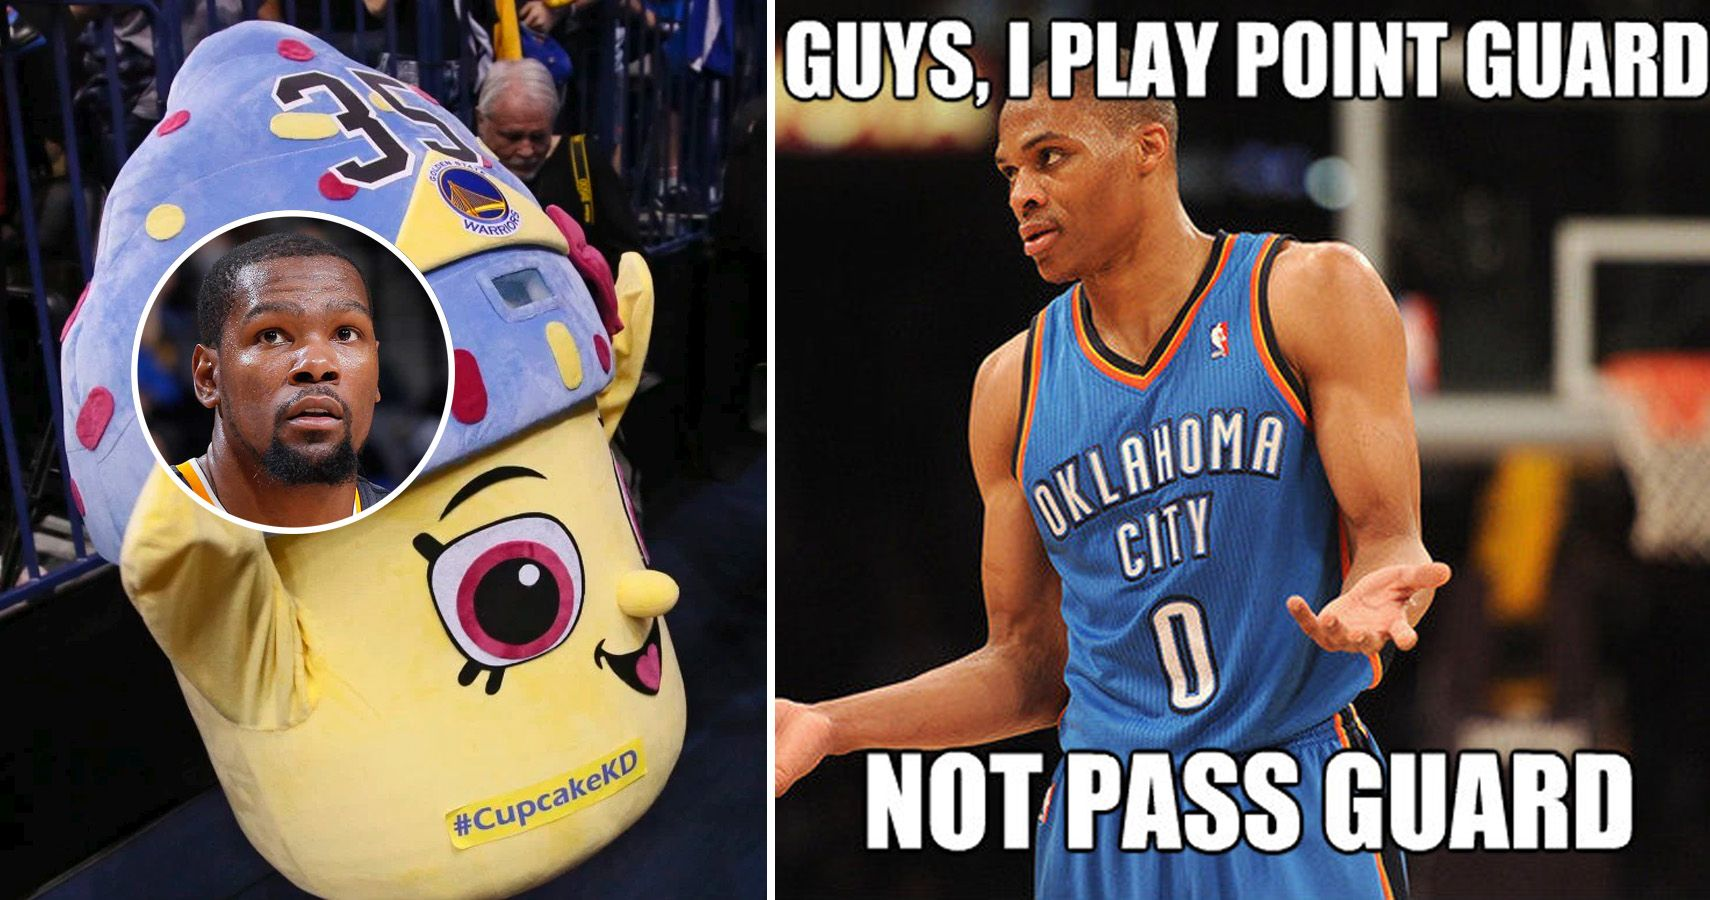 67012af4839e 15 Russell Westbrook And Kevin Durant Memes That Will Make You Cry With  Laughter